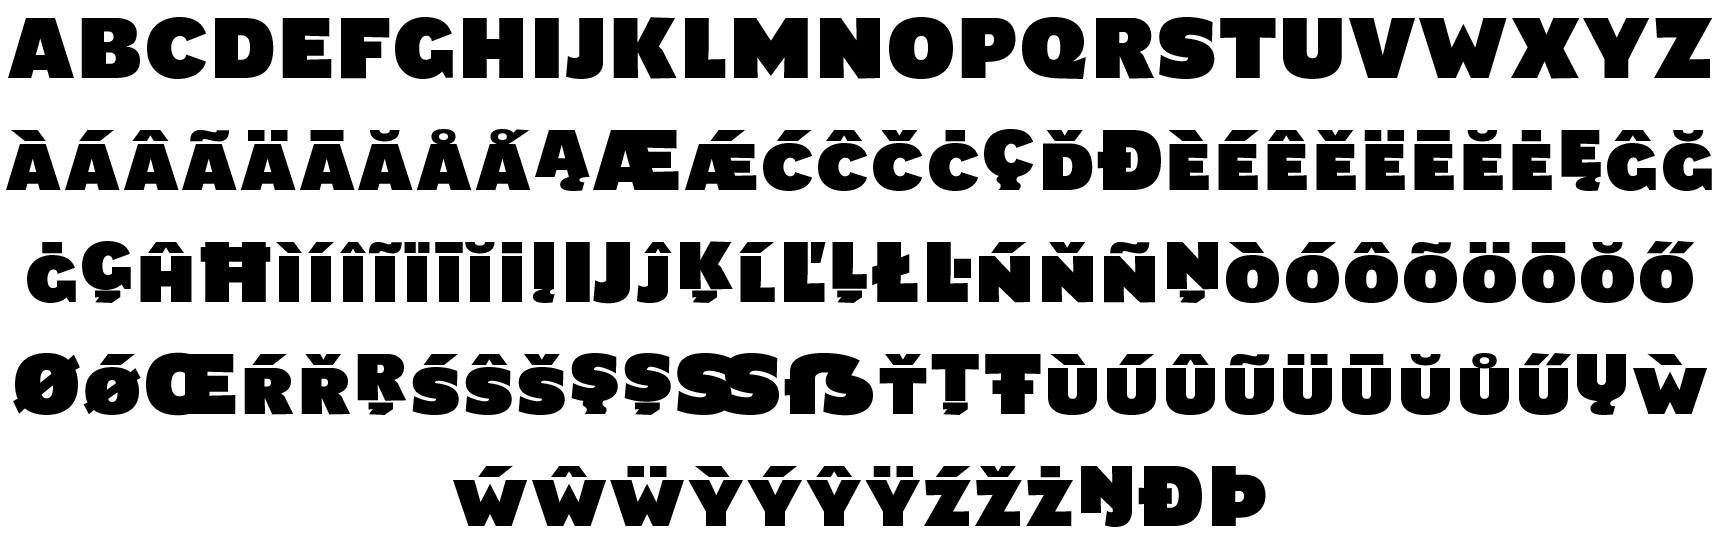 <p><em>Lettershapes change from font to font</em><br /><br />Main forms</p> glyphs